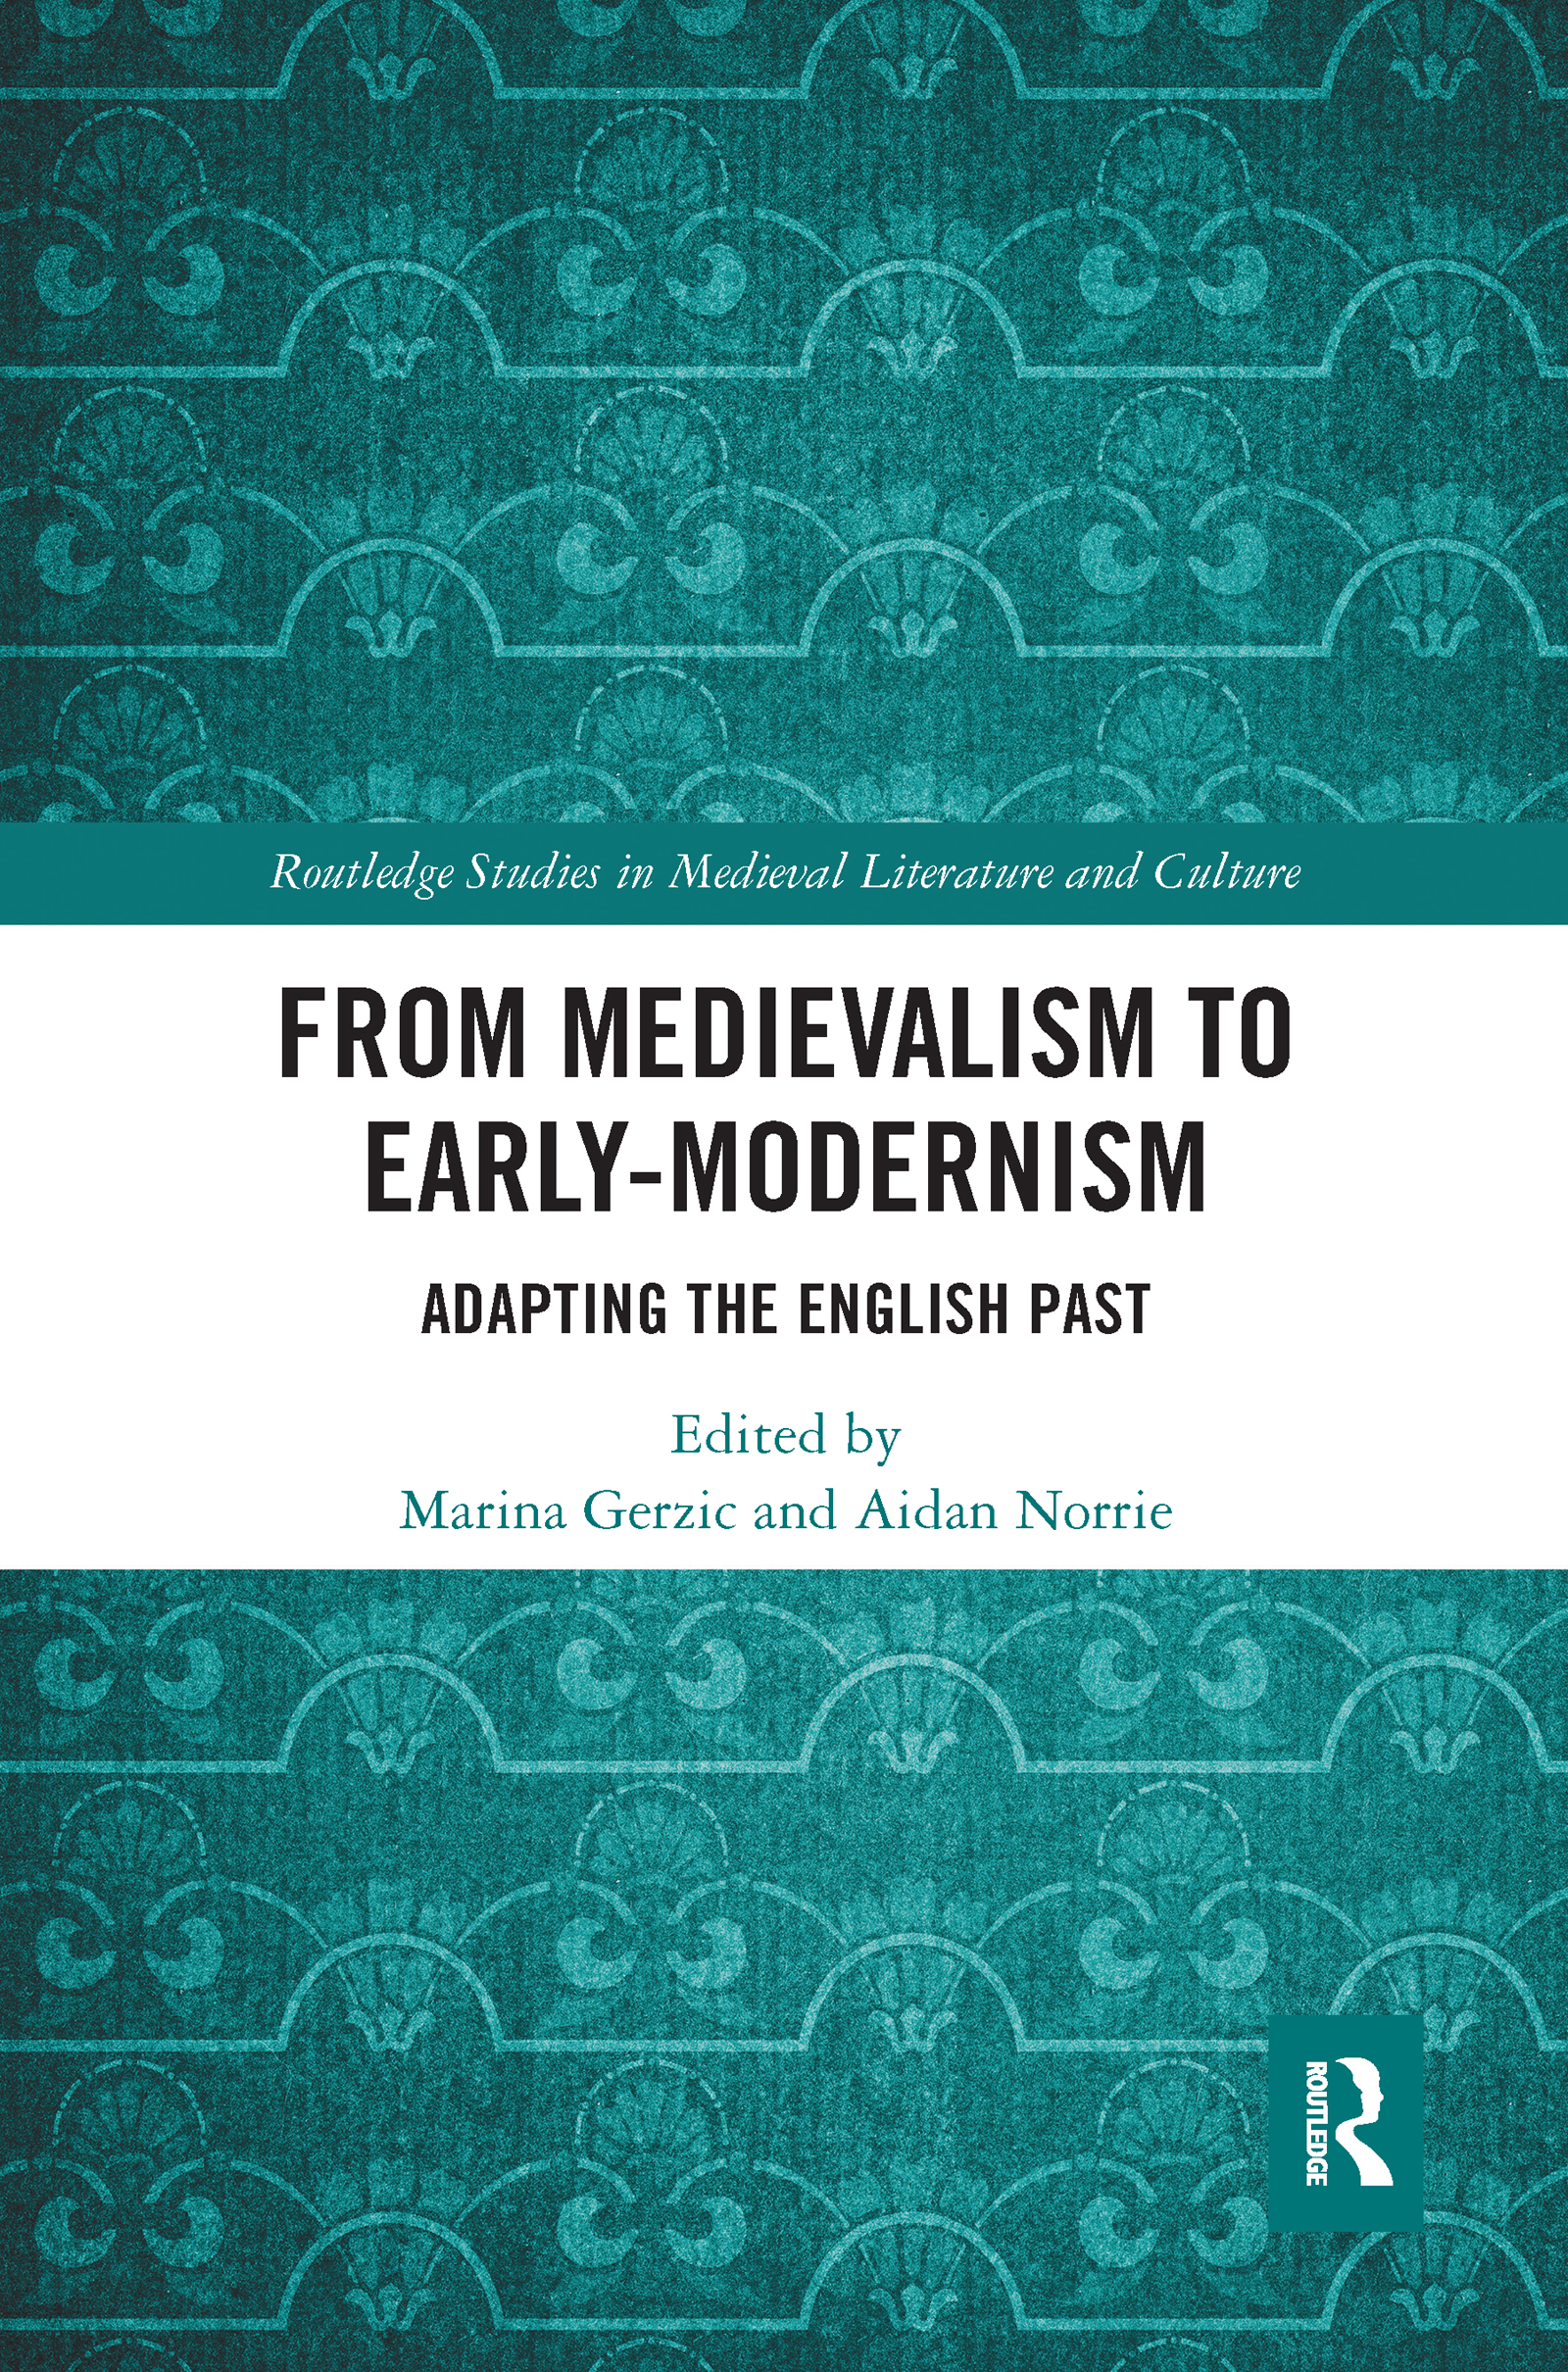 From Medievalism to Early-Modernism